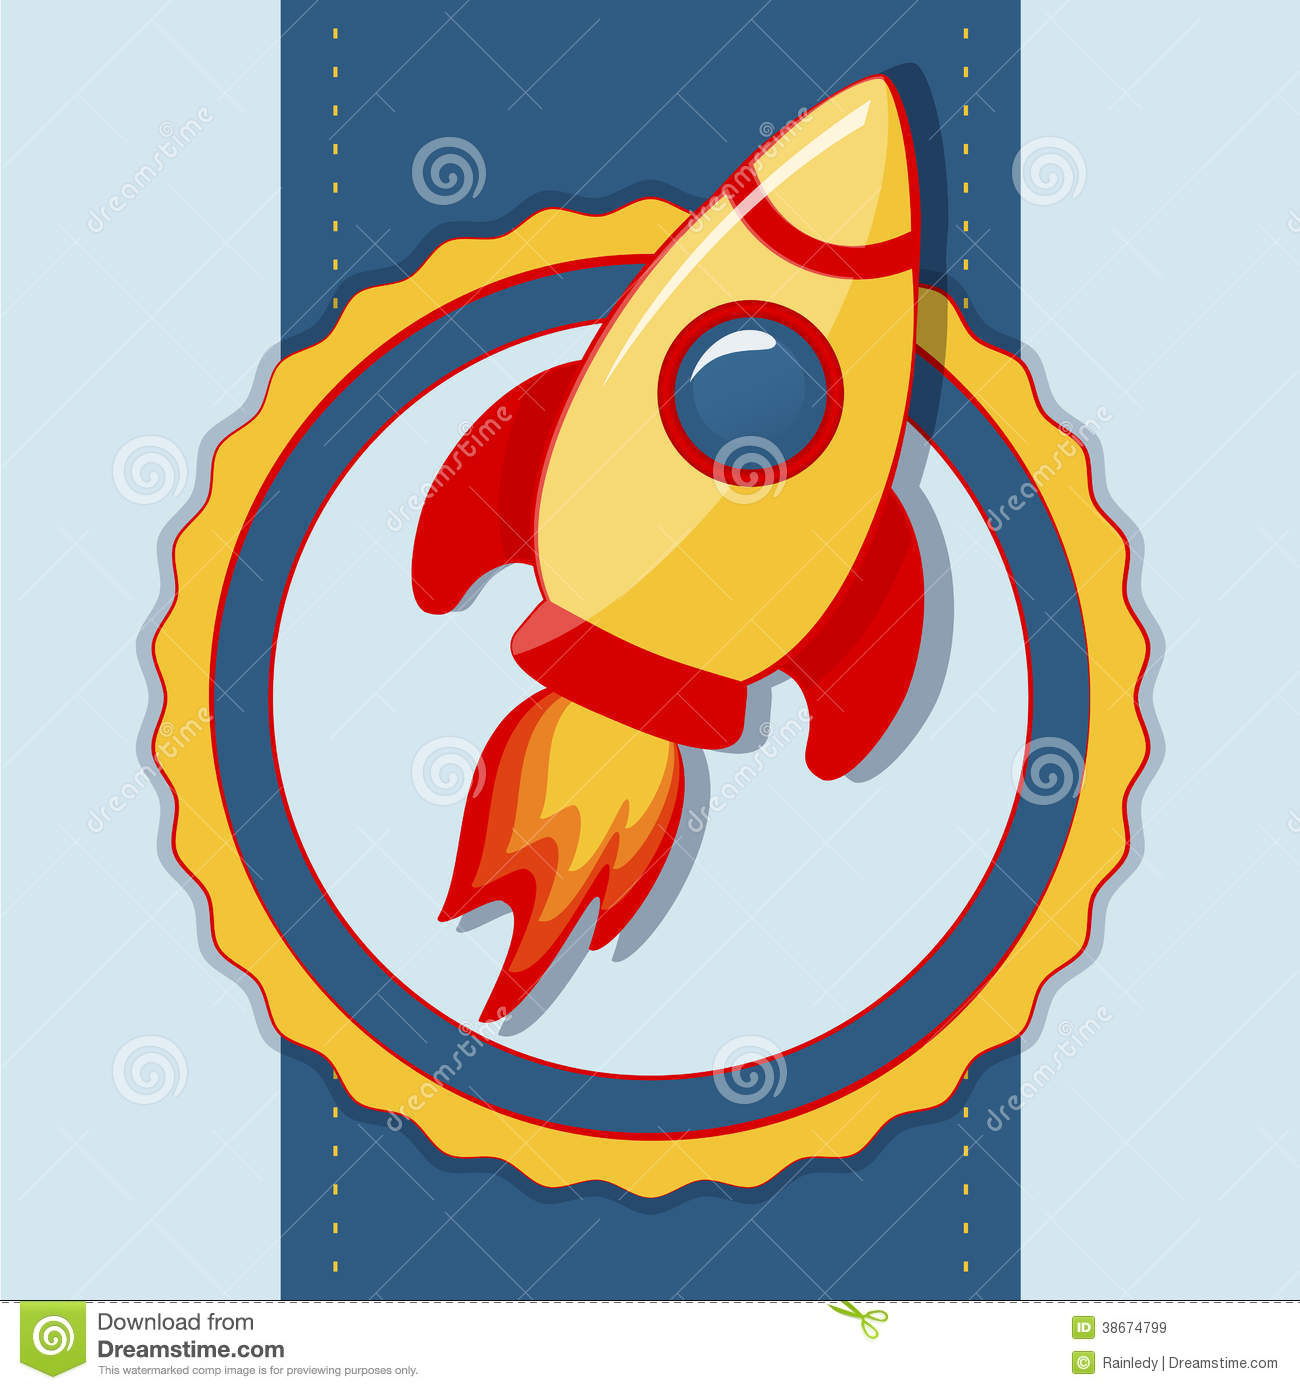 Vector card with space rocket.